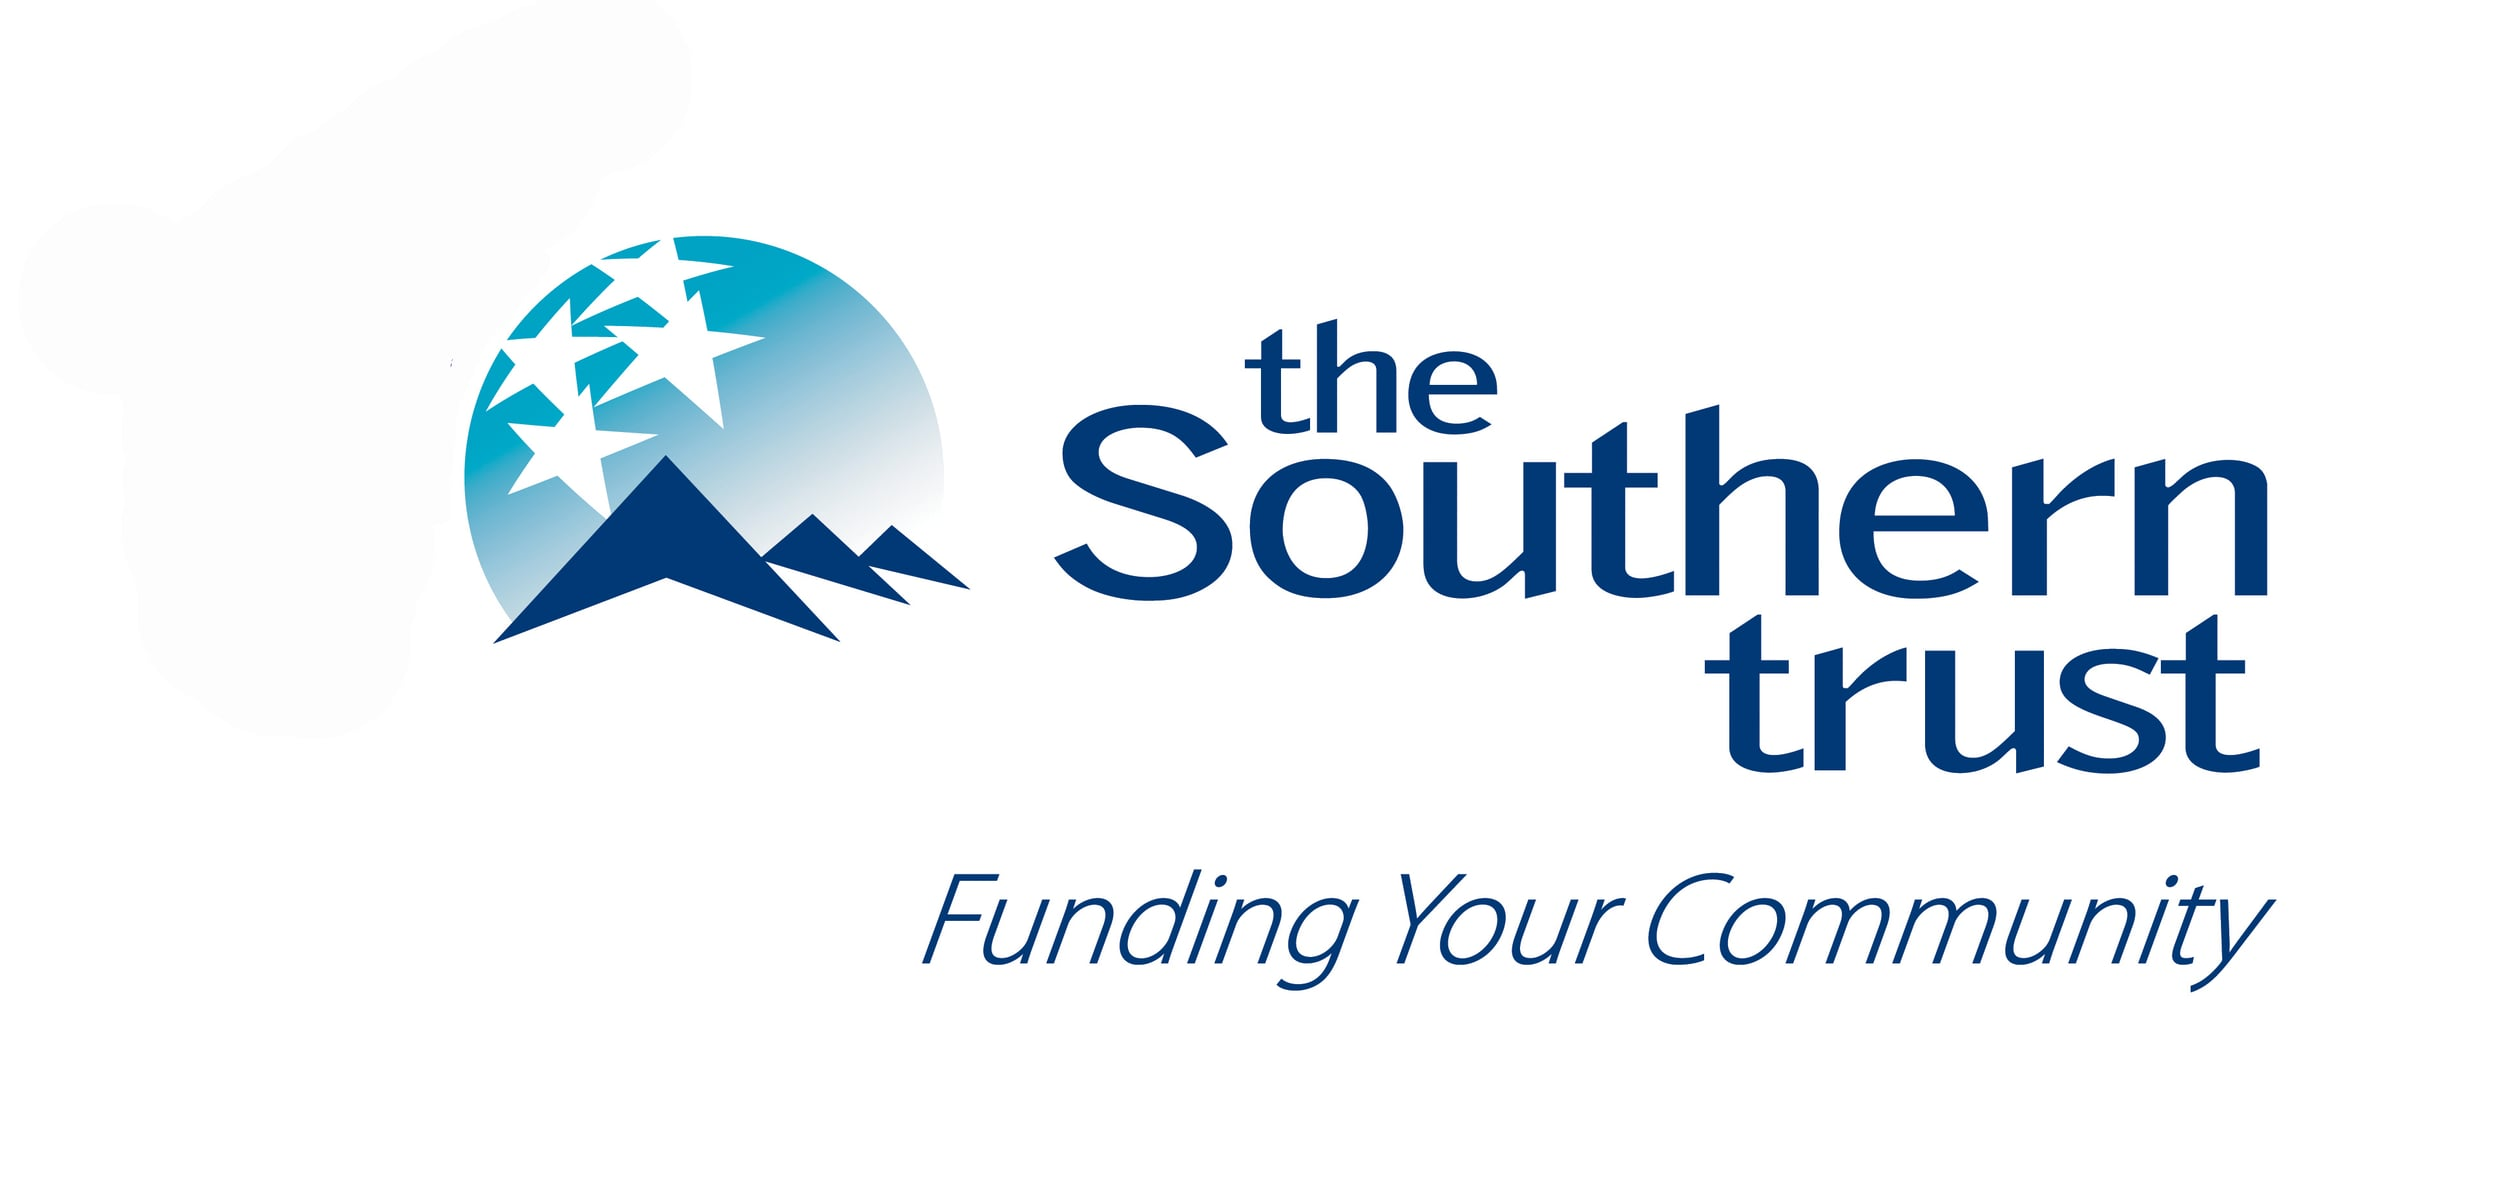 TST-Logo1-The_Southern_Trust_Funding_Your_Com-High-Res1.jpg